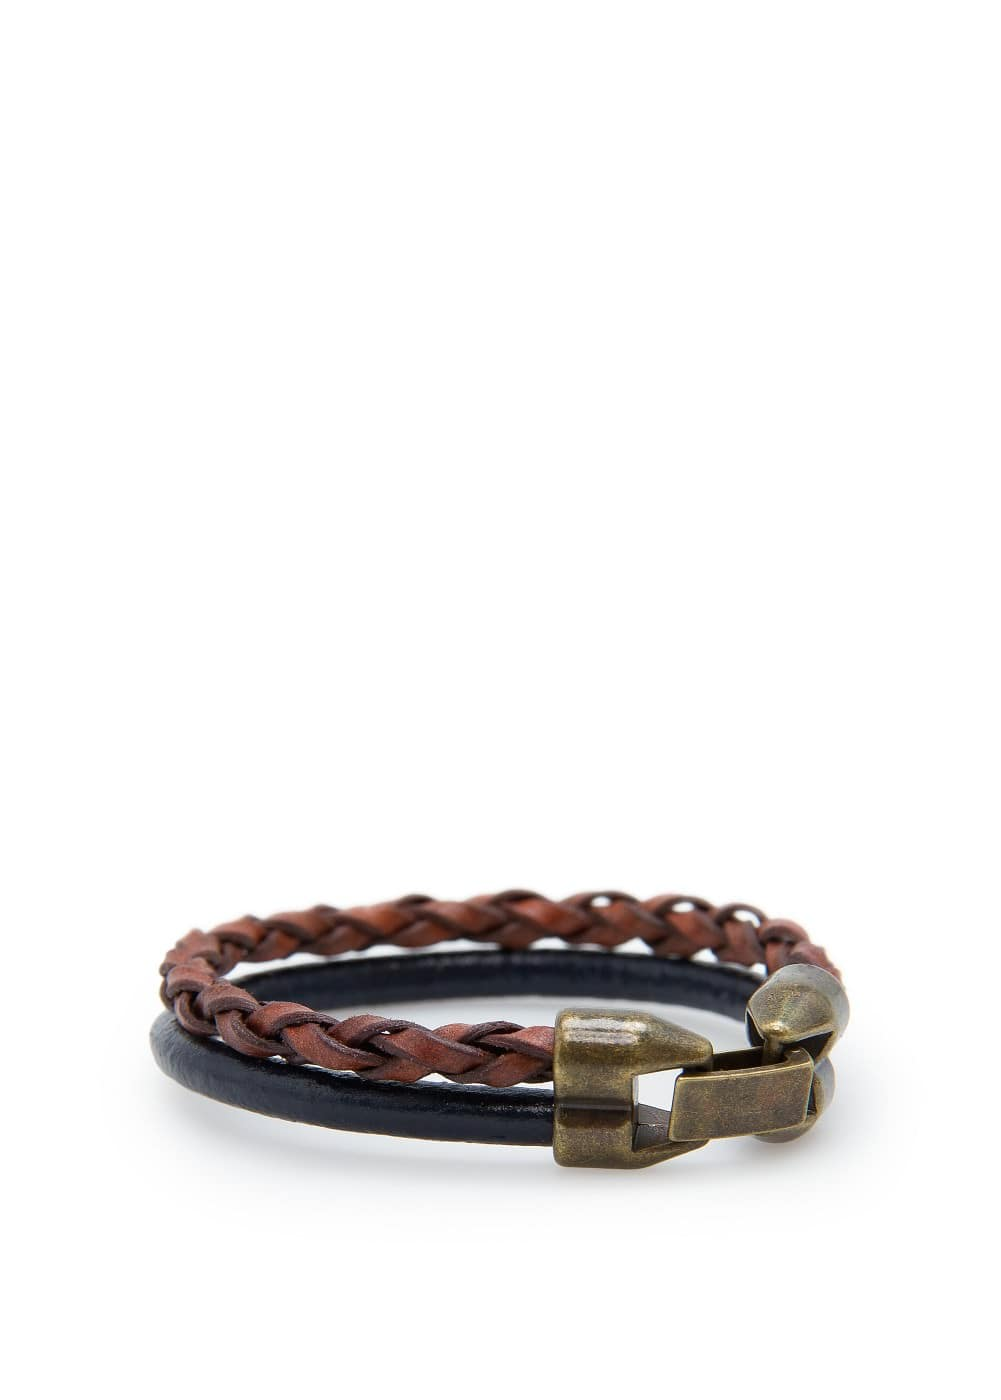 Leather double bracelet